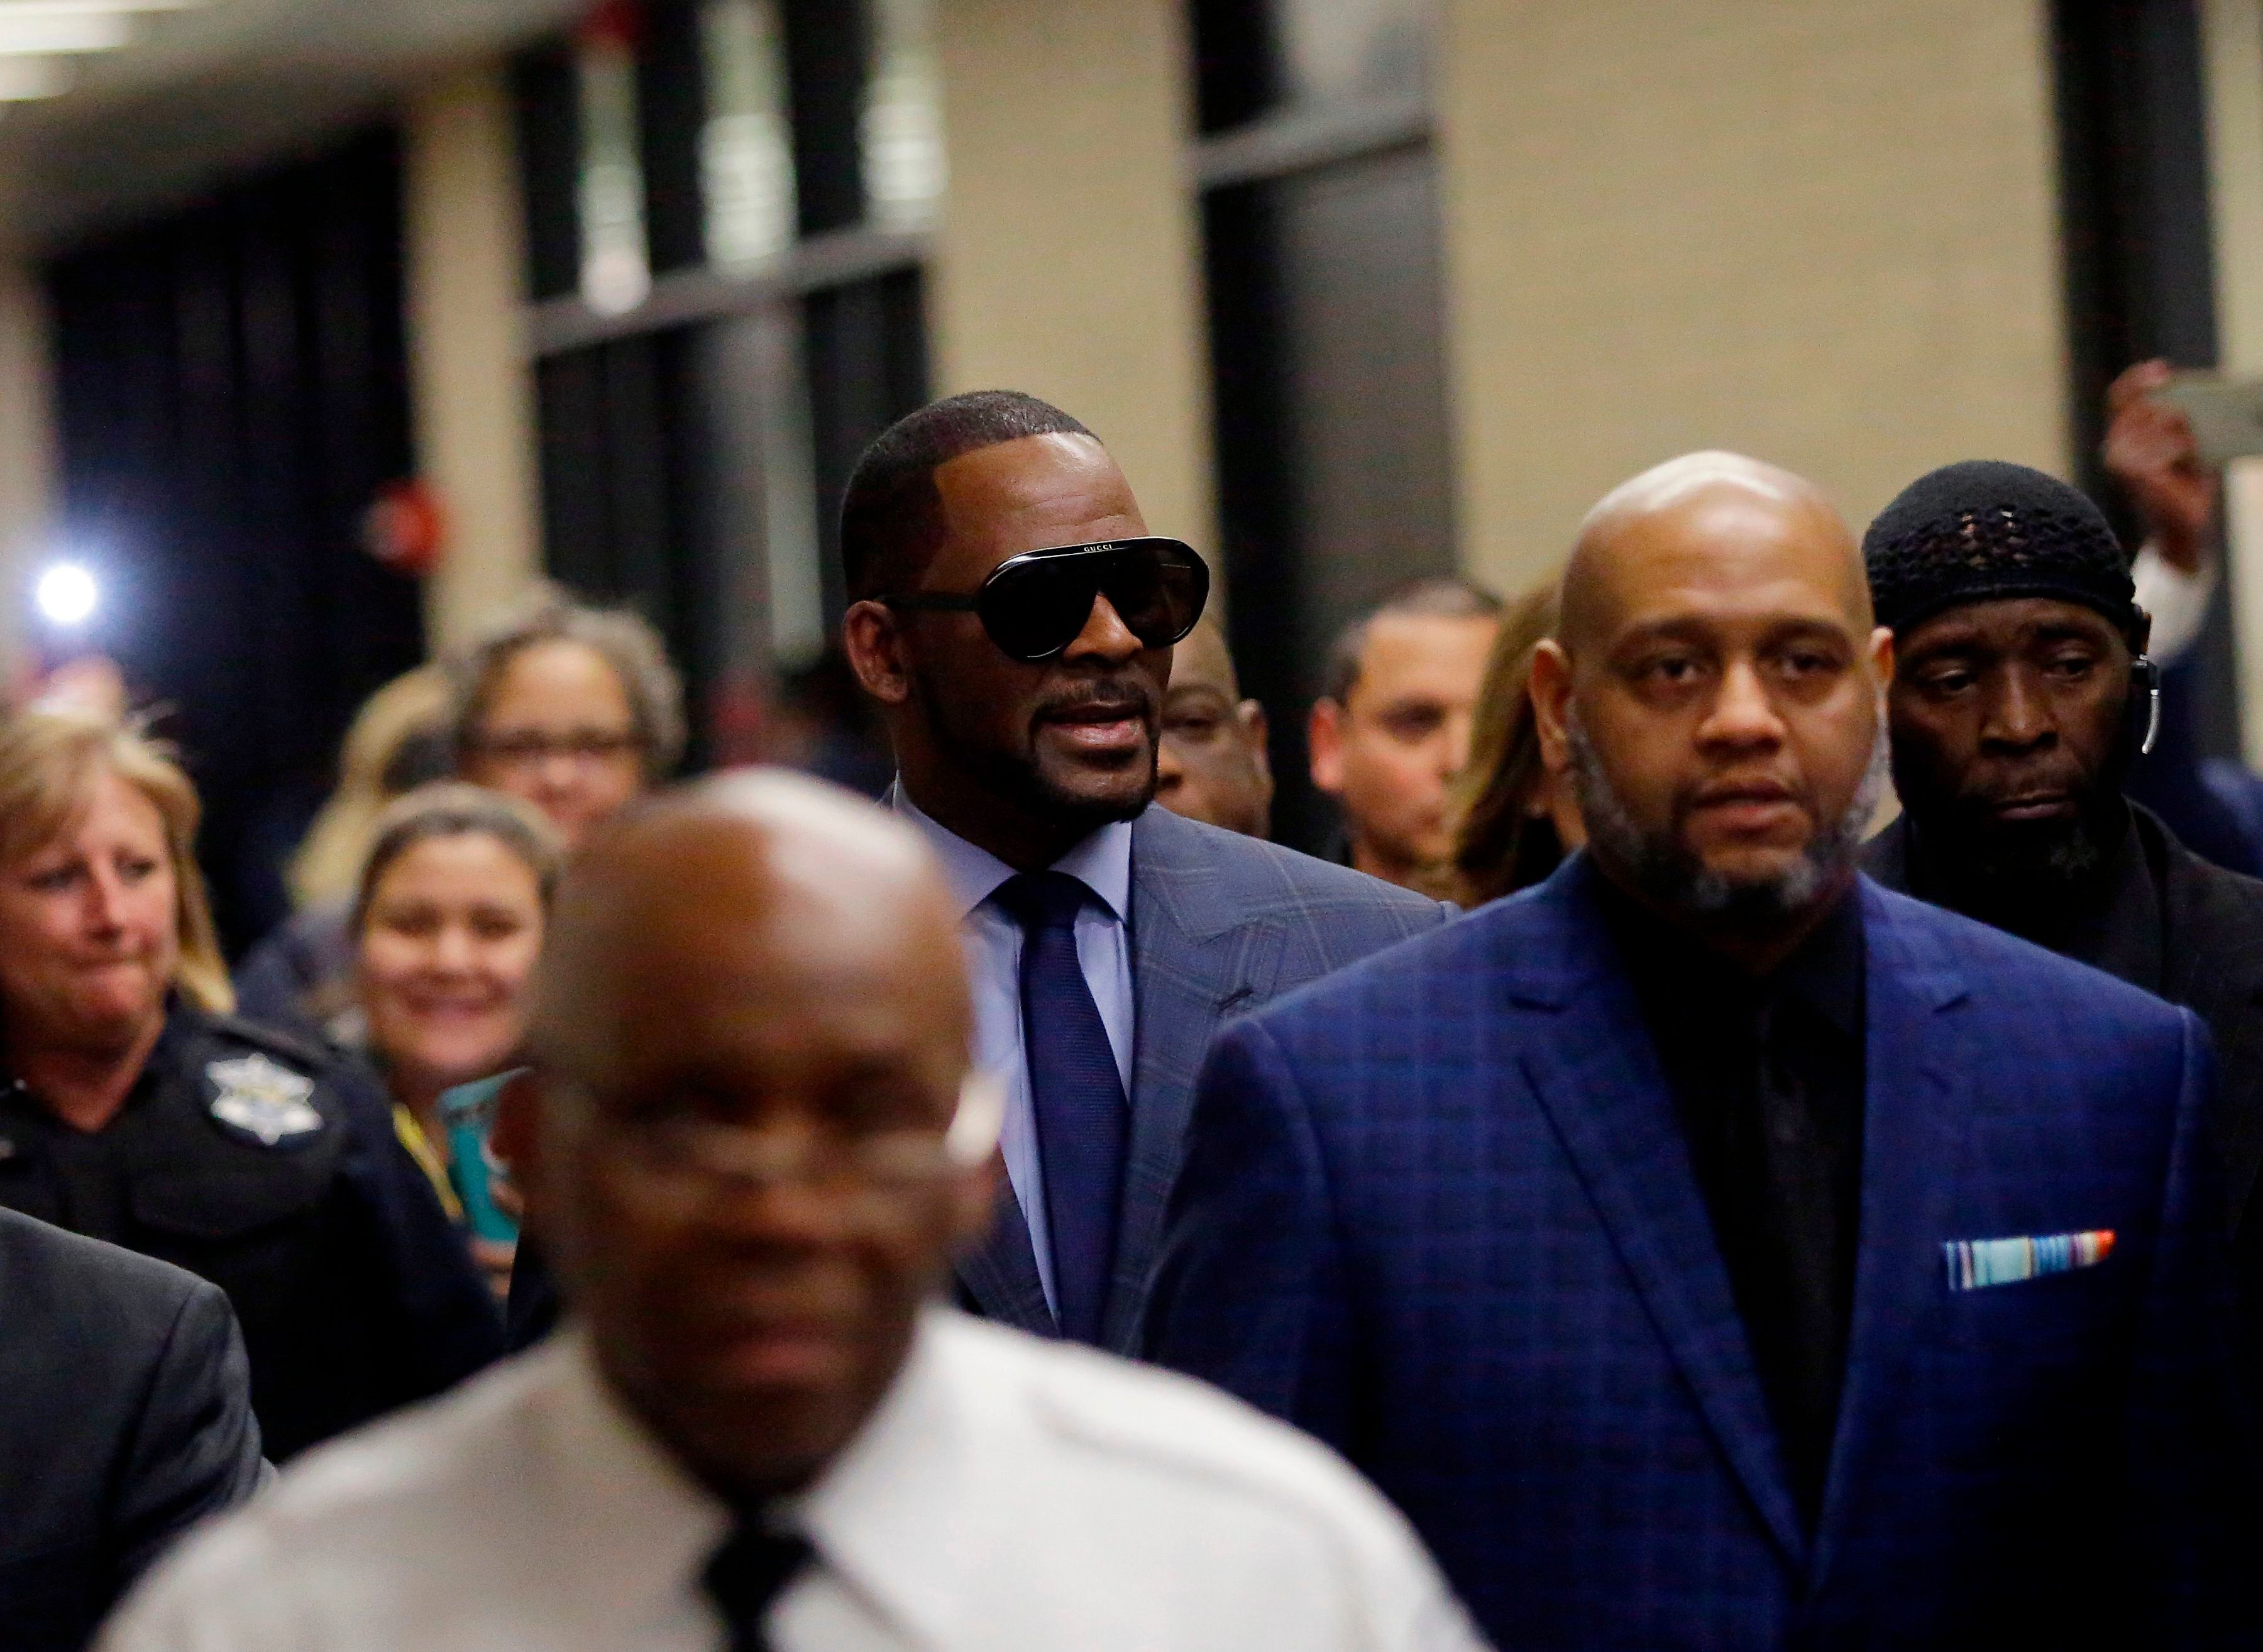 Music artist R. Kelly (C) arrives at the Circuit Court of Cook County, Domestic Relations Division on March 6, 2019 in Chicago, Illinois. - Kelly denied allegations he sexually abused women and girls in his first public comments since being indicted last month. 'I didn't do this stuff. This not me,' Kelly told 'CBS This Morning', saying he was 'fighting' for his life in an interview to air Wednesday. Excerpts were released Tuesday. (Photo by JOSHUA LOTT / AFP)        (Photo credit should read JOSHUA LOTT/AFP/Getty Images)